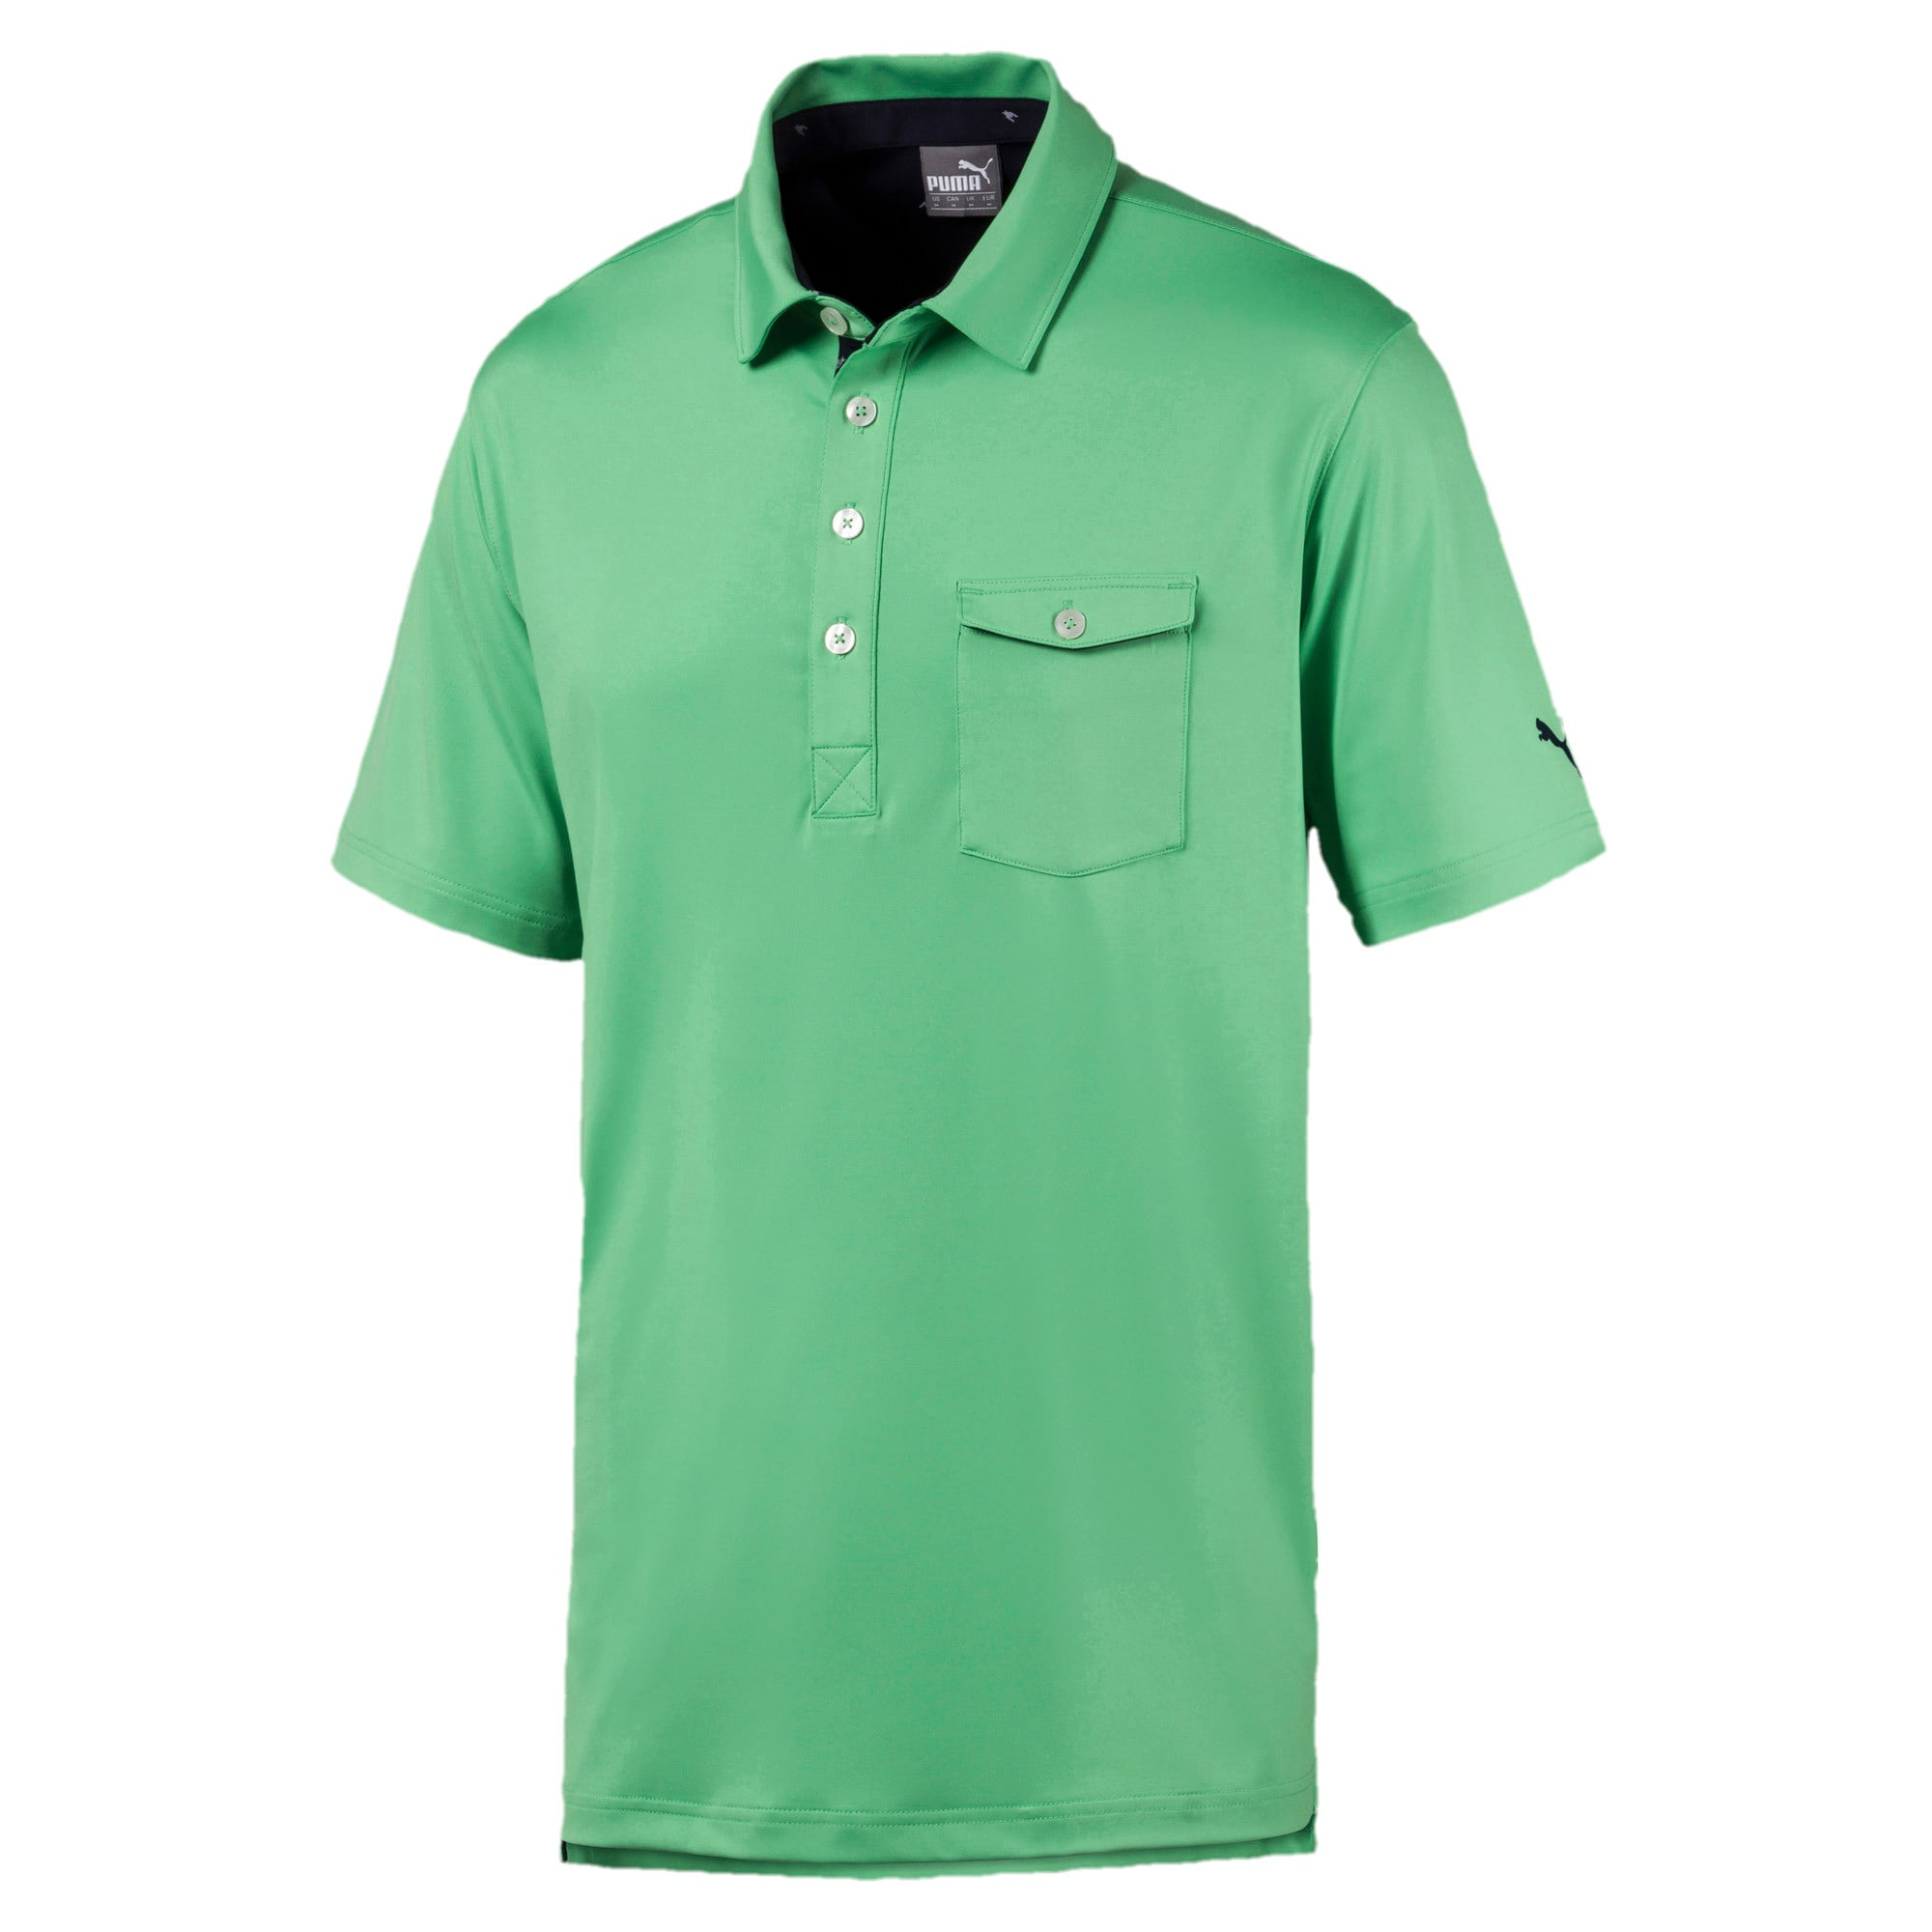 Thumbnail 4 of Donegal Men's Golf Polo, Irish Green, medium